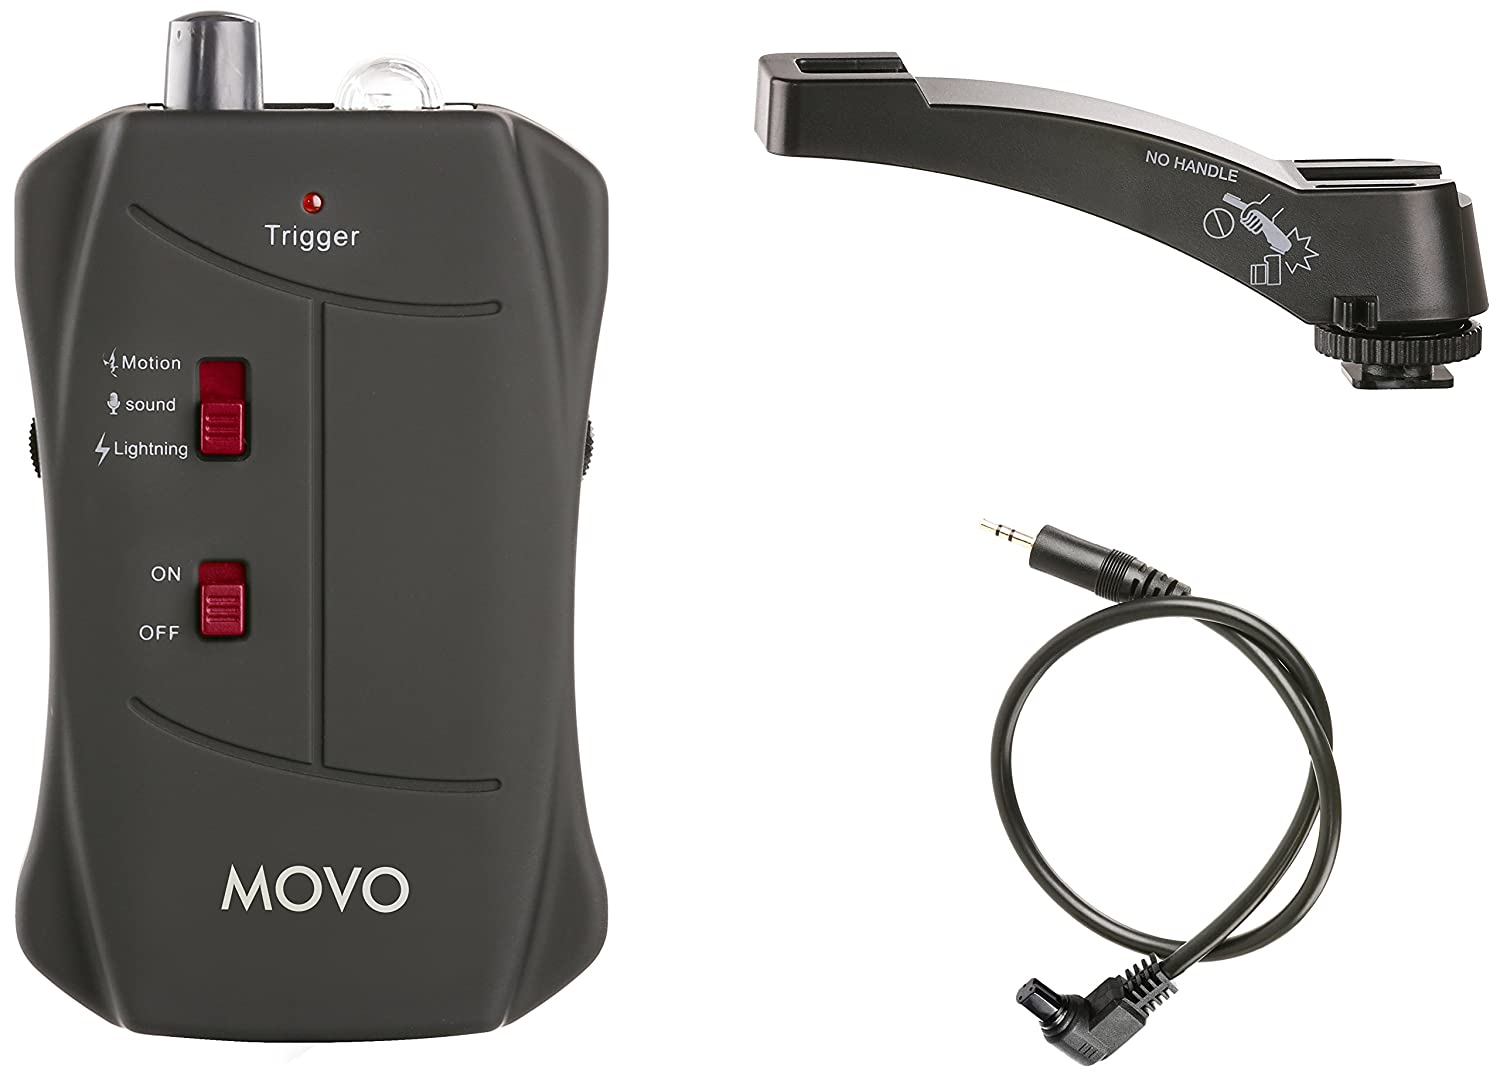 Amazon.com : Movo LC200-C3 Sound, Motion and Lightning Shutter Trigger for Canon EOS 1D, X, 1DS, 5D, 5DS, 5D Mark IV, 6D, 7D, 50D DSLR Camera : Camera & ...